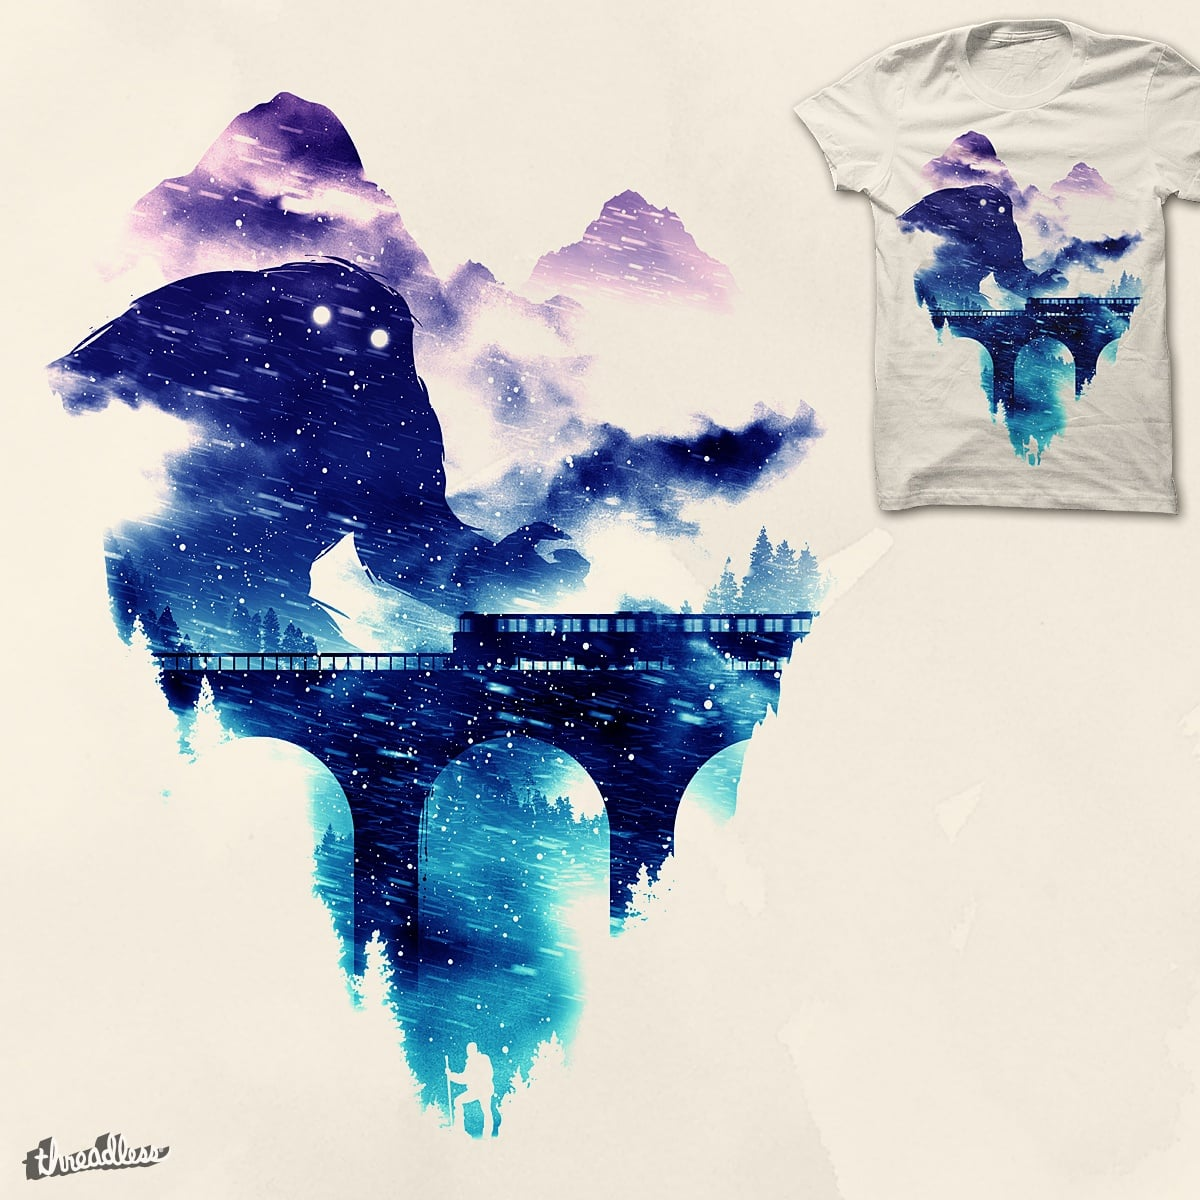 Another Strange Winter by nielquisaba on Threadless